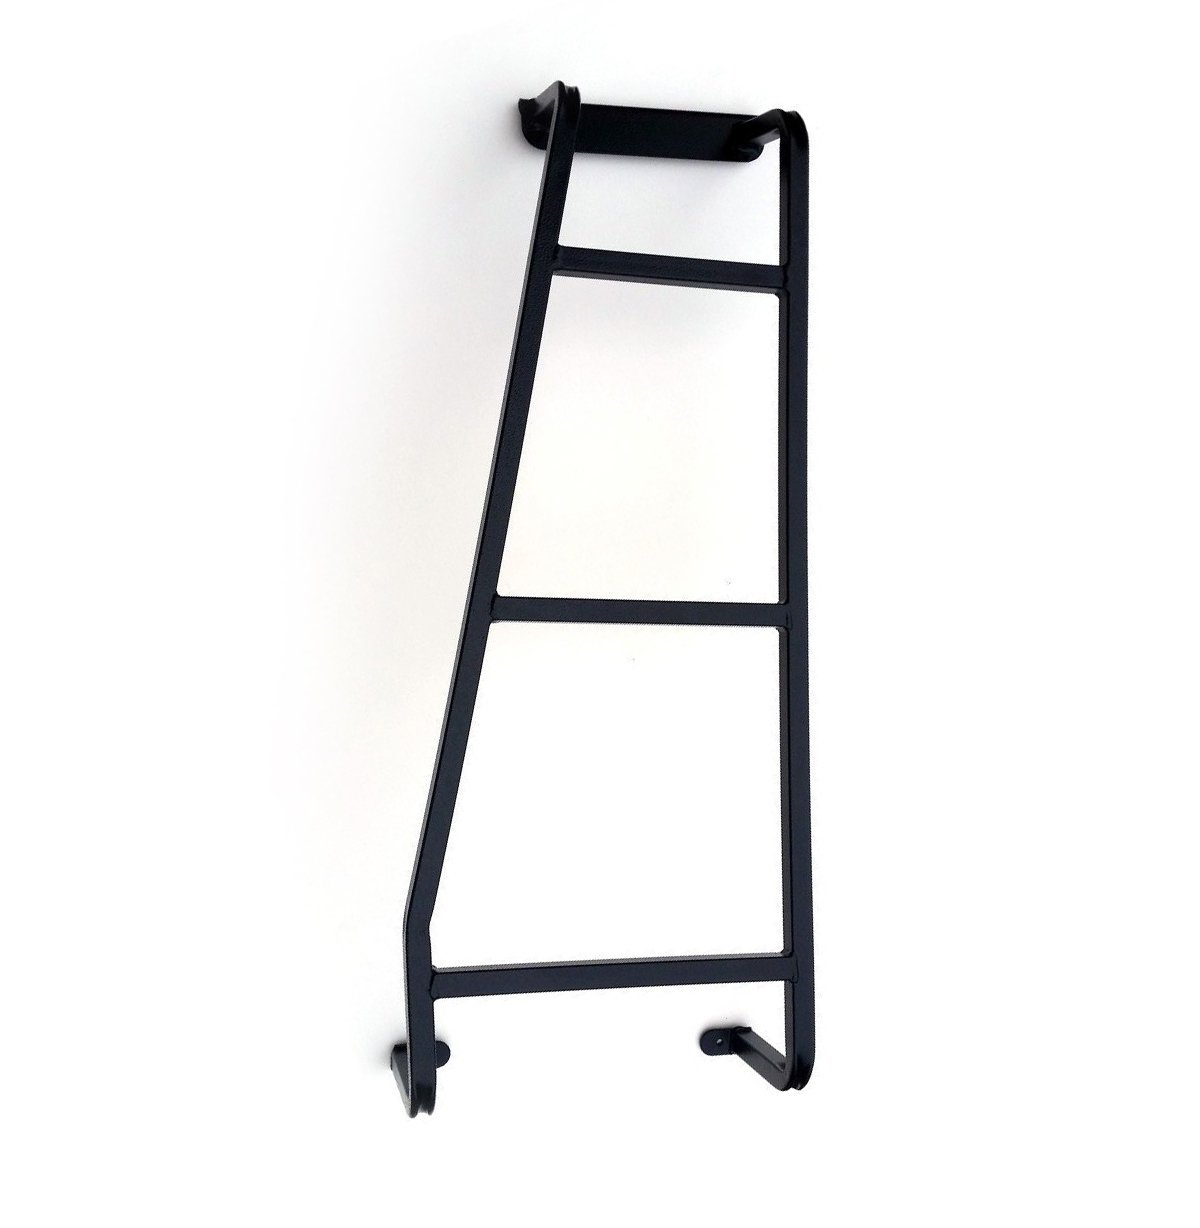 LAND ROVER DISCOVERY 2 1999-2004 ROOF RACK ACCESS LADDER PART# STC50134